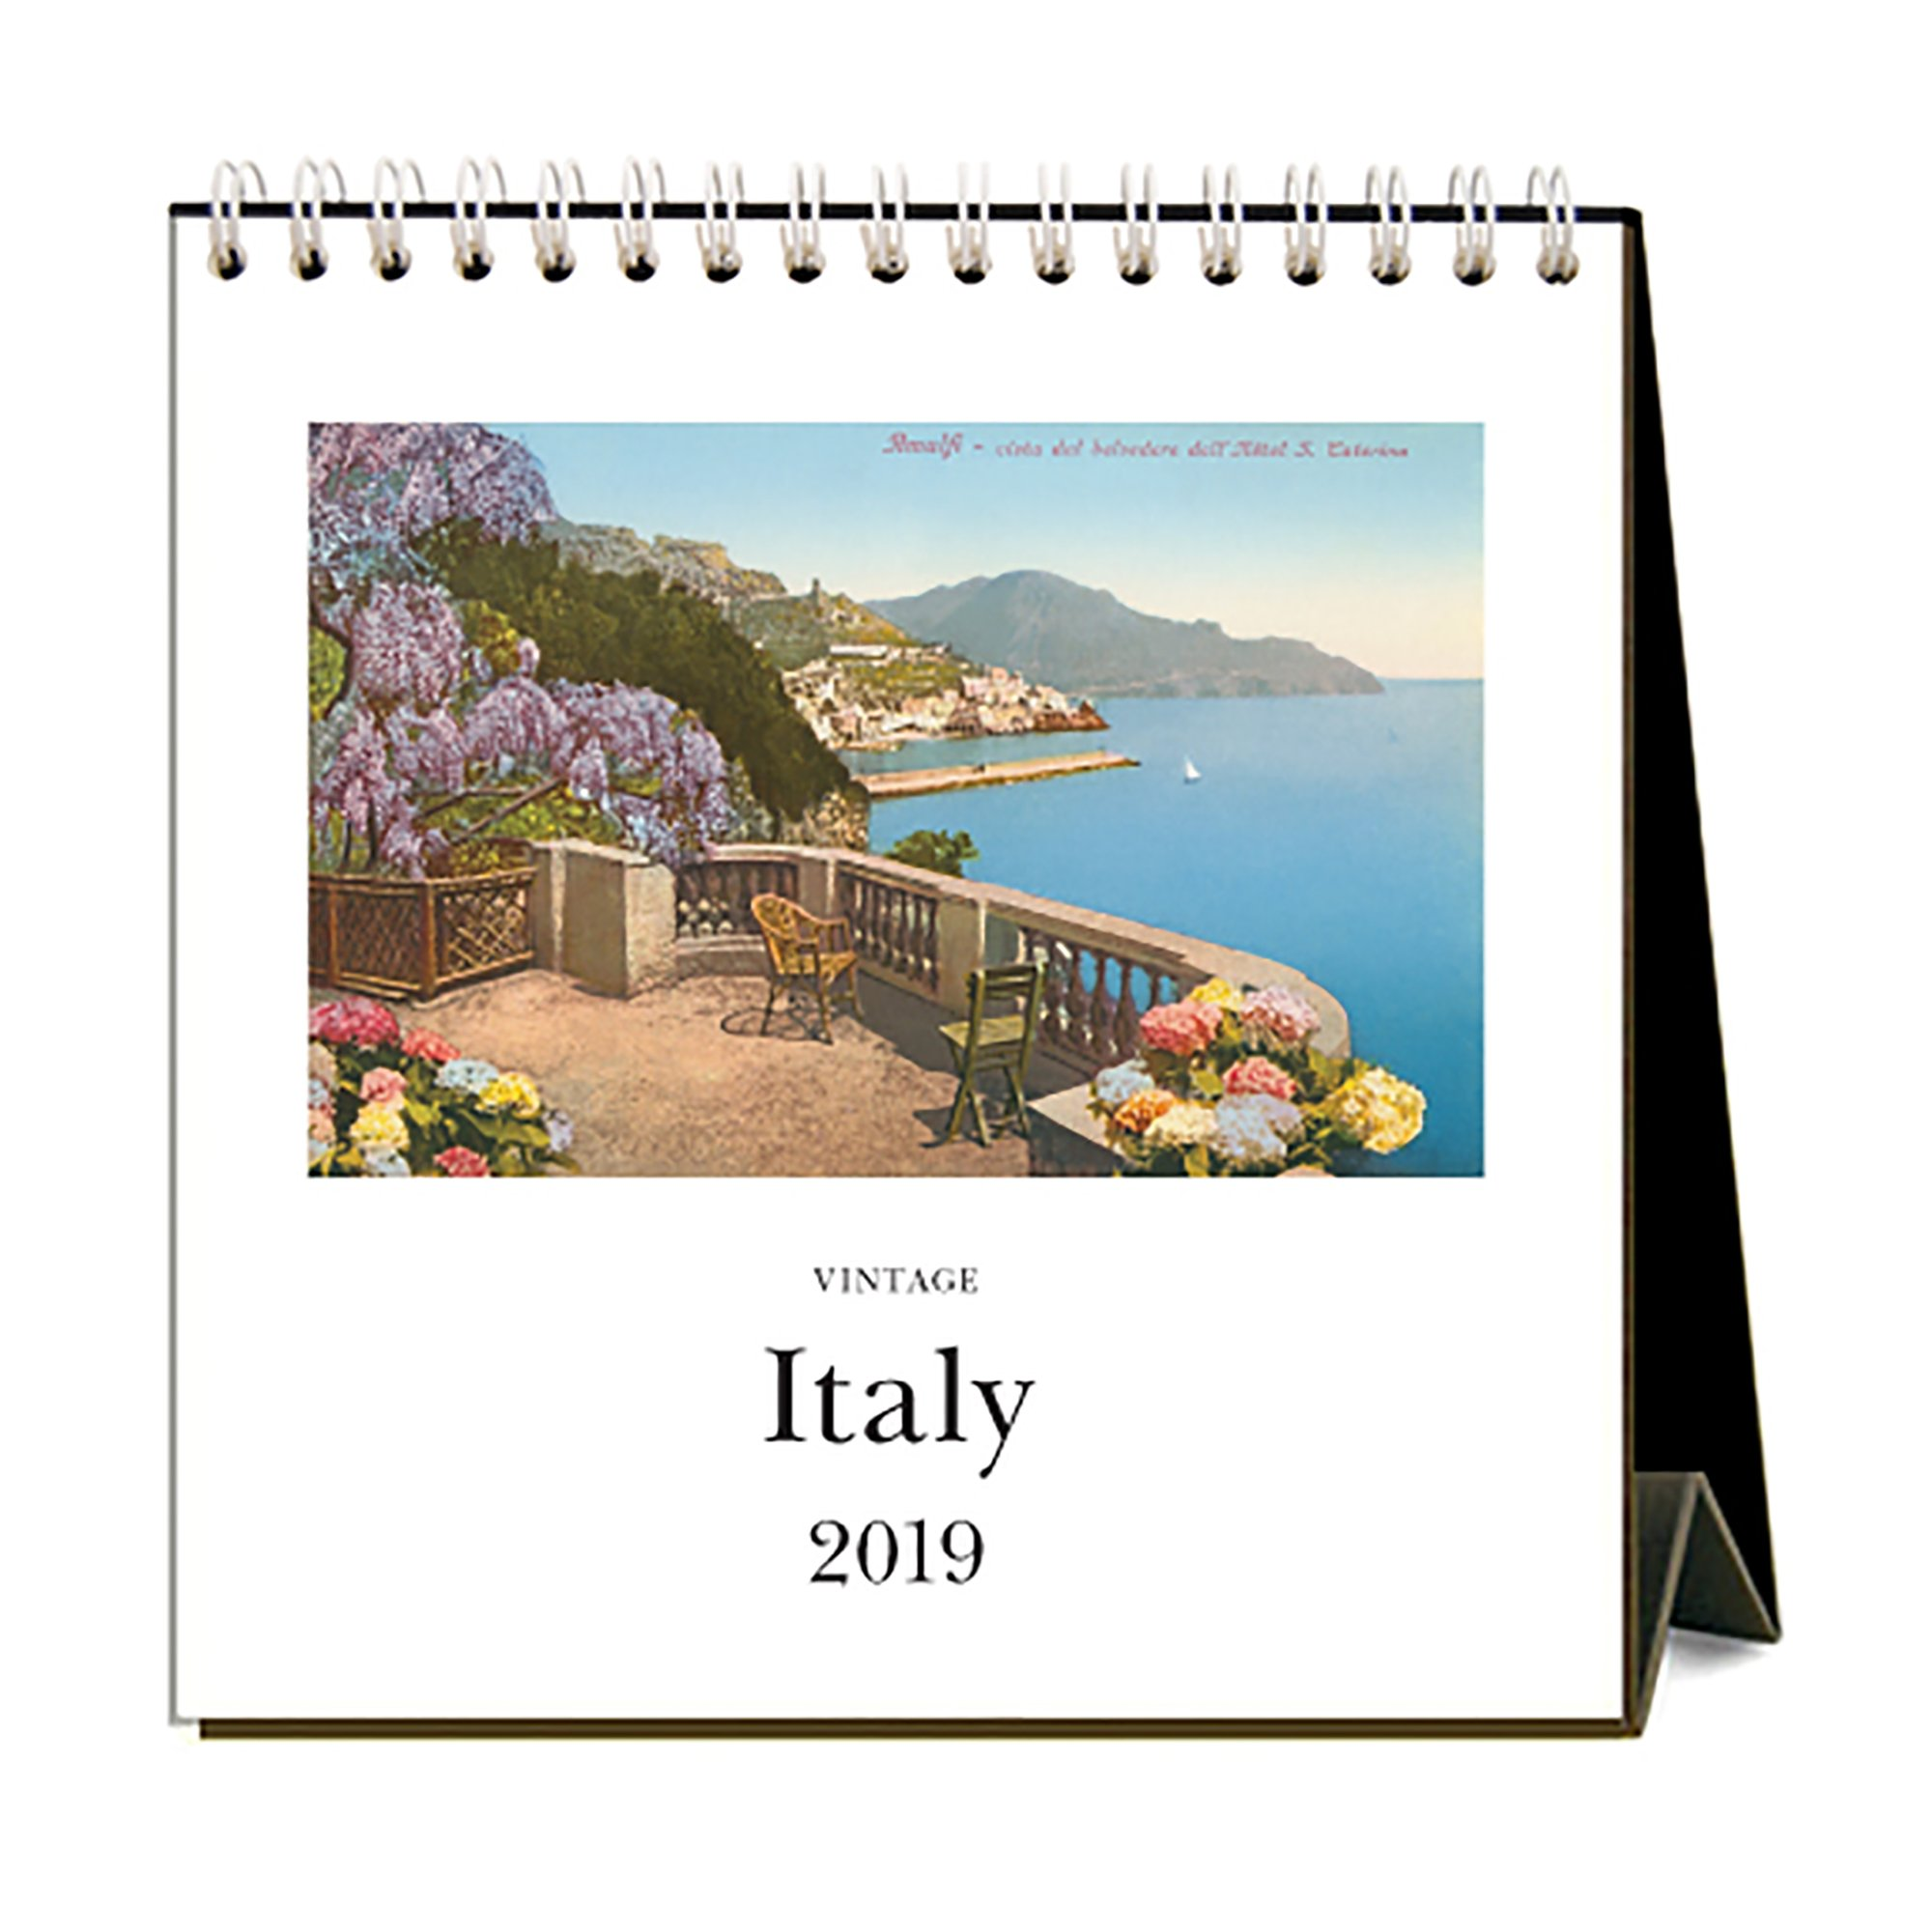 Coloring Desk Calendar 2019 With Italy The Getty Store